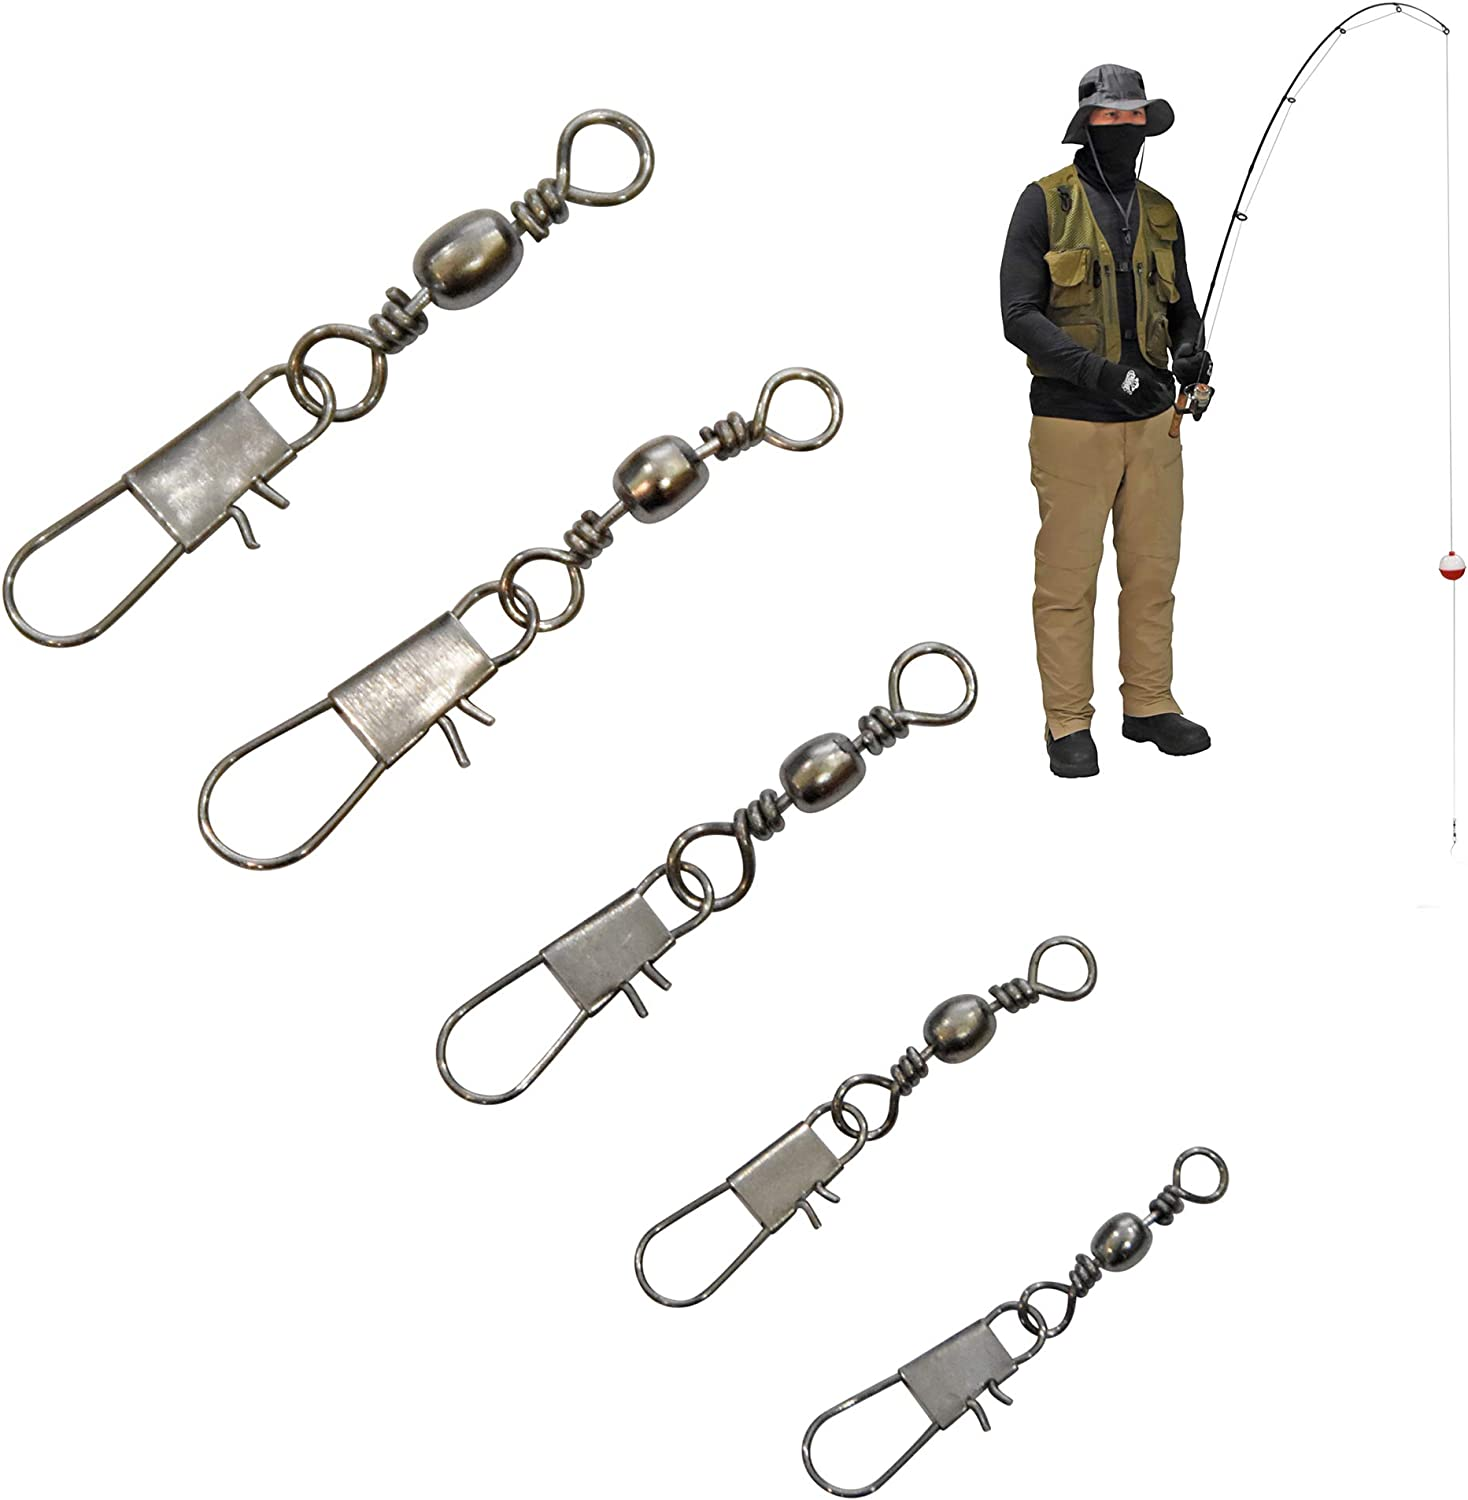 Easy to Use Durable for Freshwater Short Sea Fishing Fishing Equipment Fishing Swivel Swivel Connector